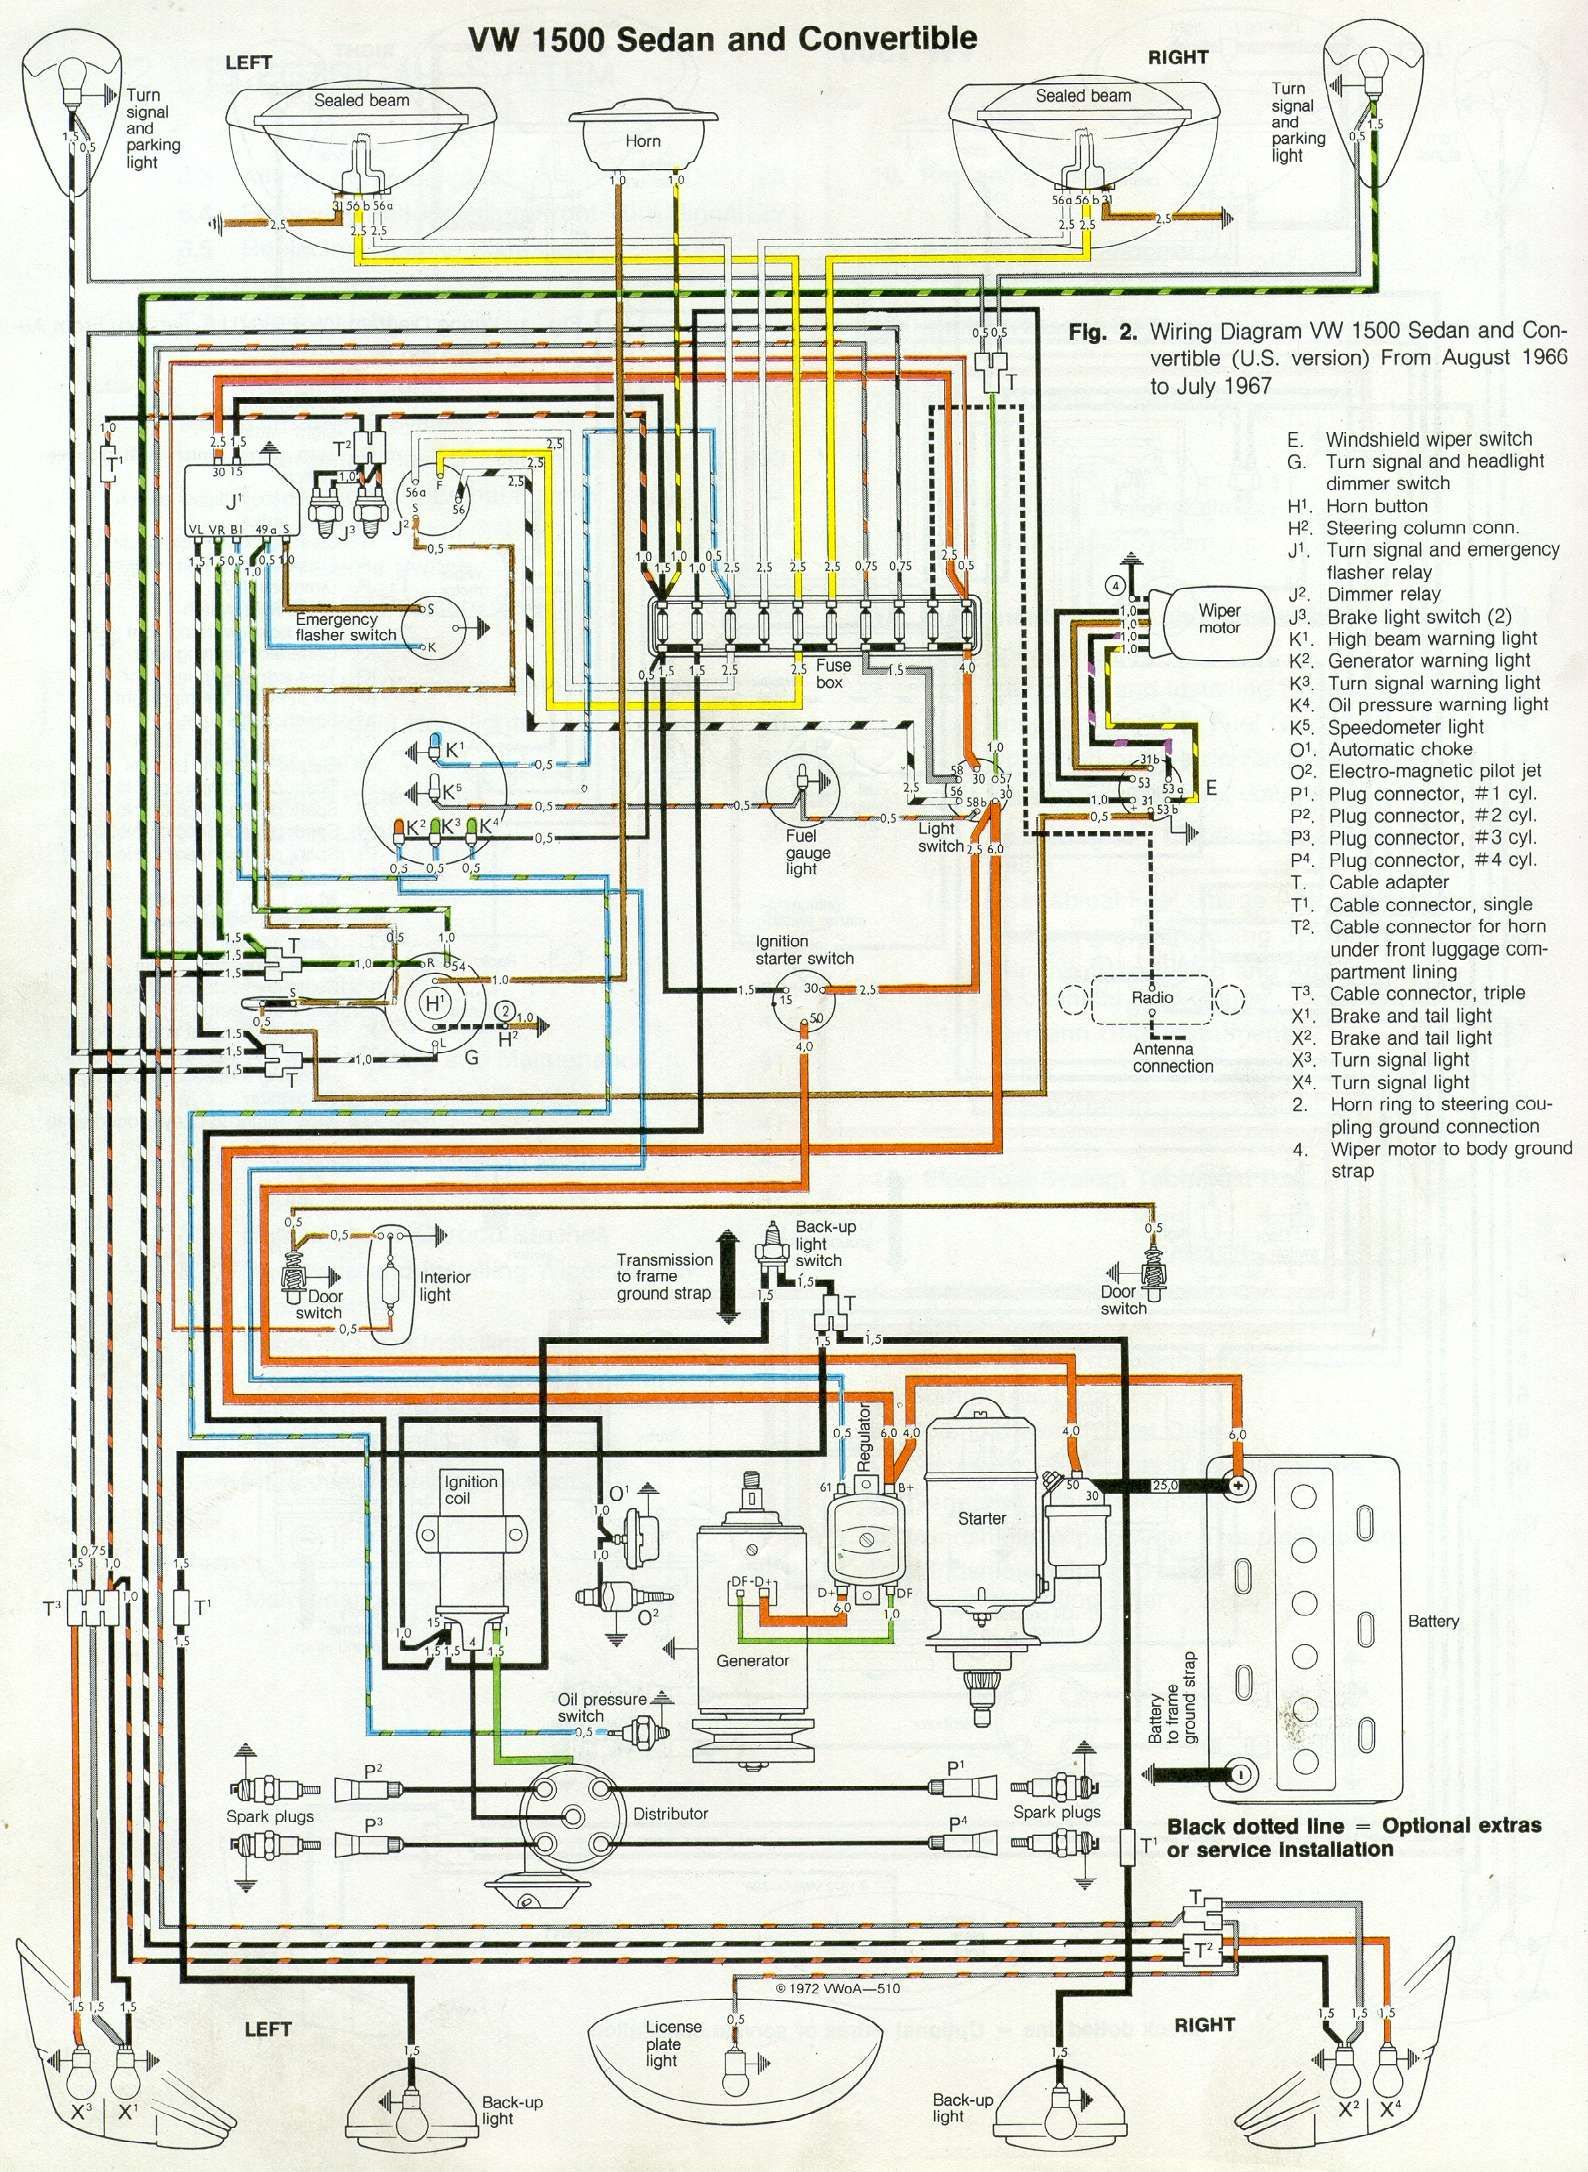 1969 vw beetle wiring diagram wiring diagram experts1969 vw wiring diagram wiring diagram experts 1969 vw [ 1588 x 2172 Pixel ]